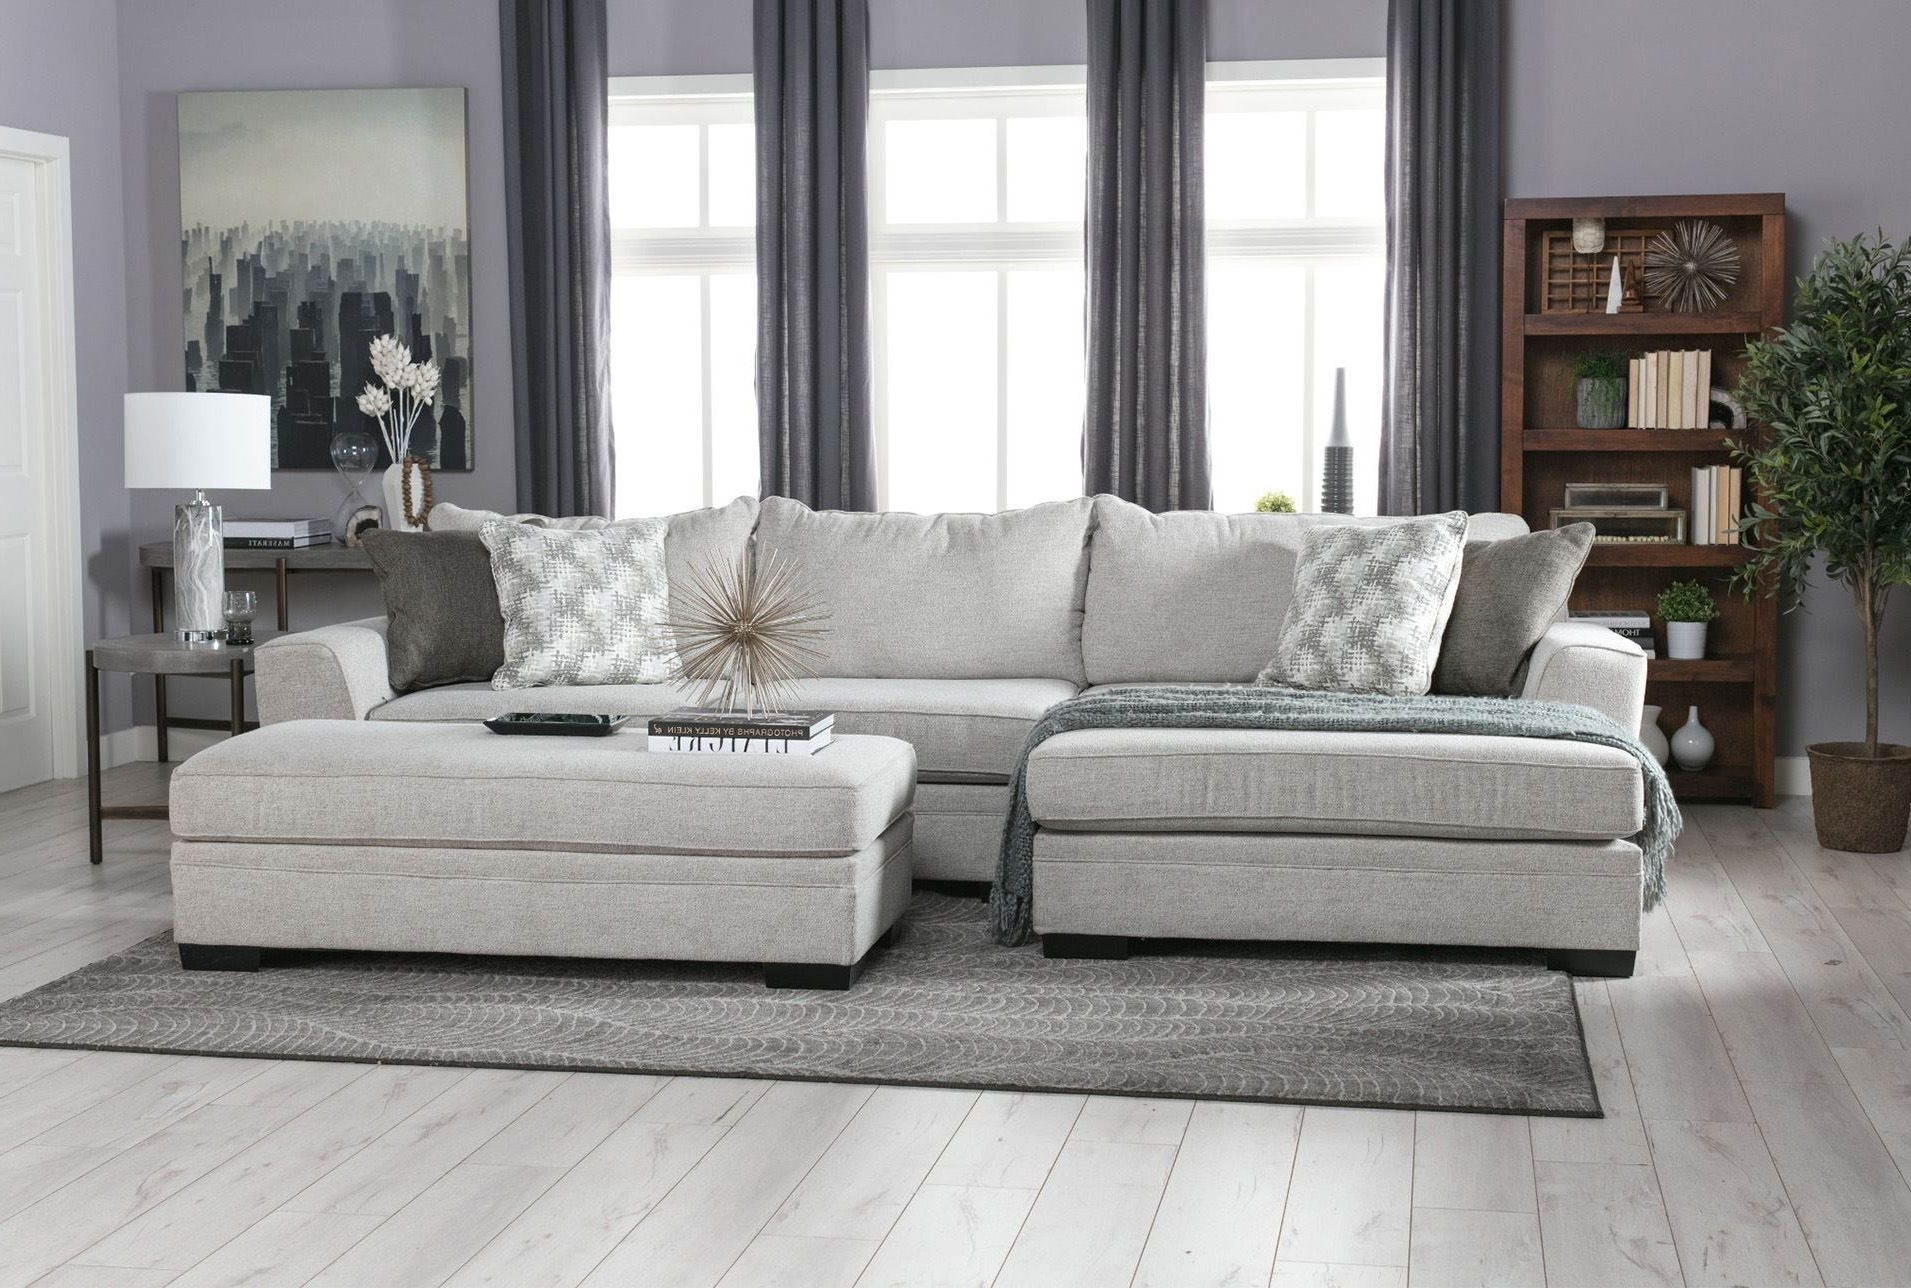 Aquarius Light Grey 2 Piece Sectional Wlaf Chaise Minimalist Inside Arrowmask 2 Piece Sectionals With Laf Chaise (View 21 of 25)